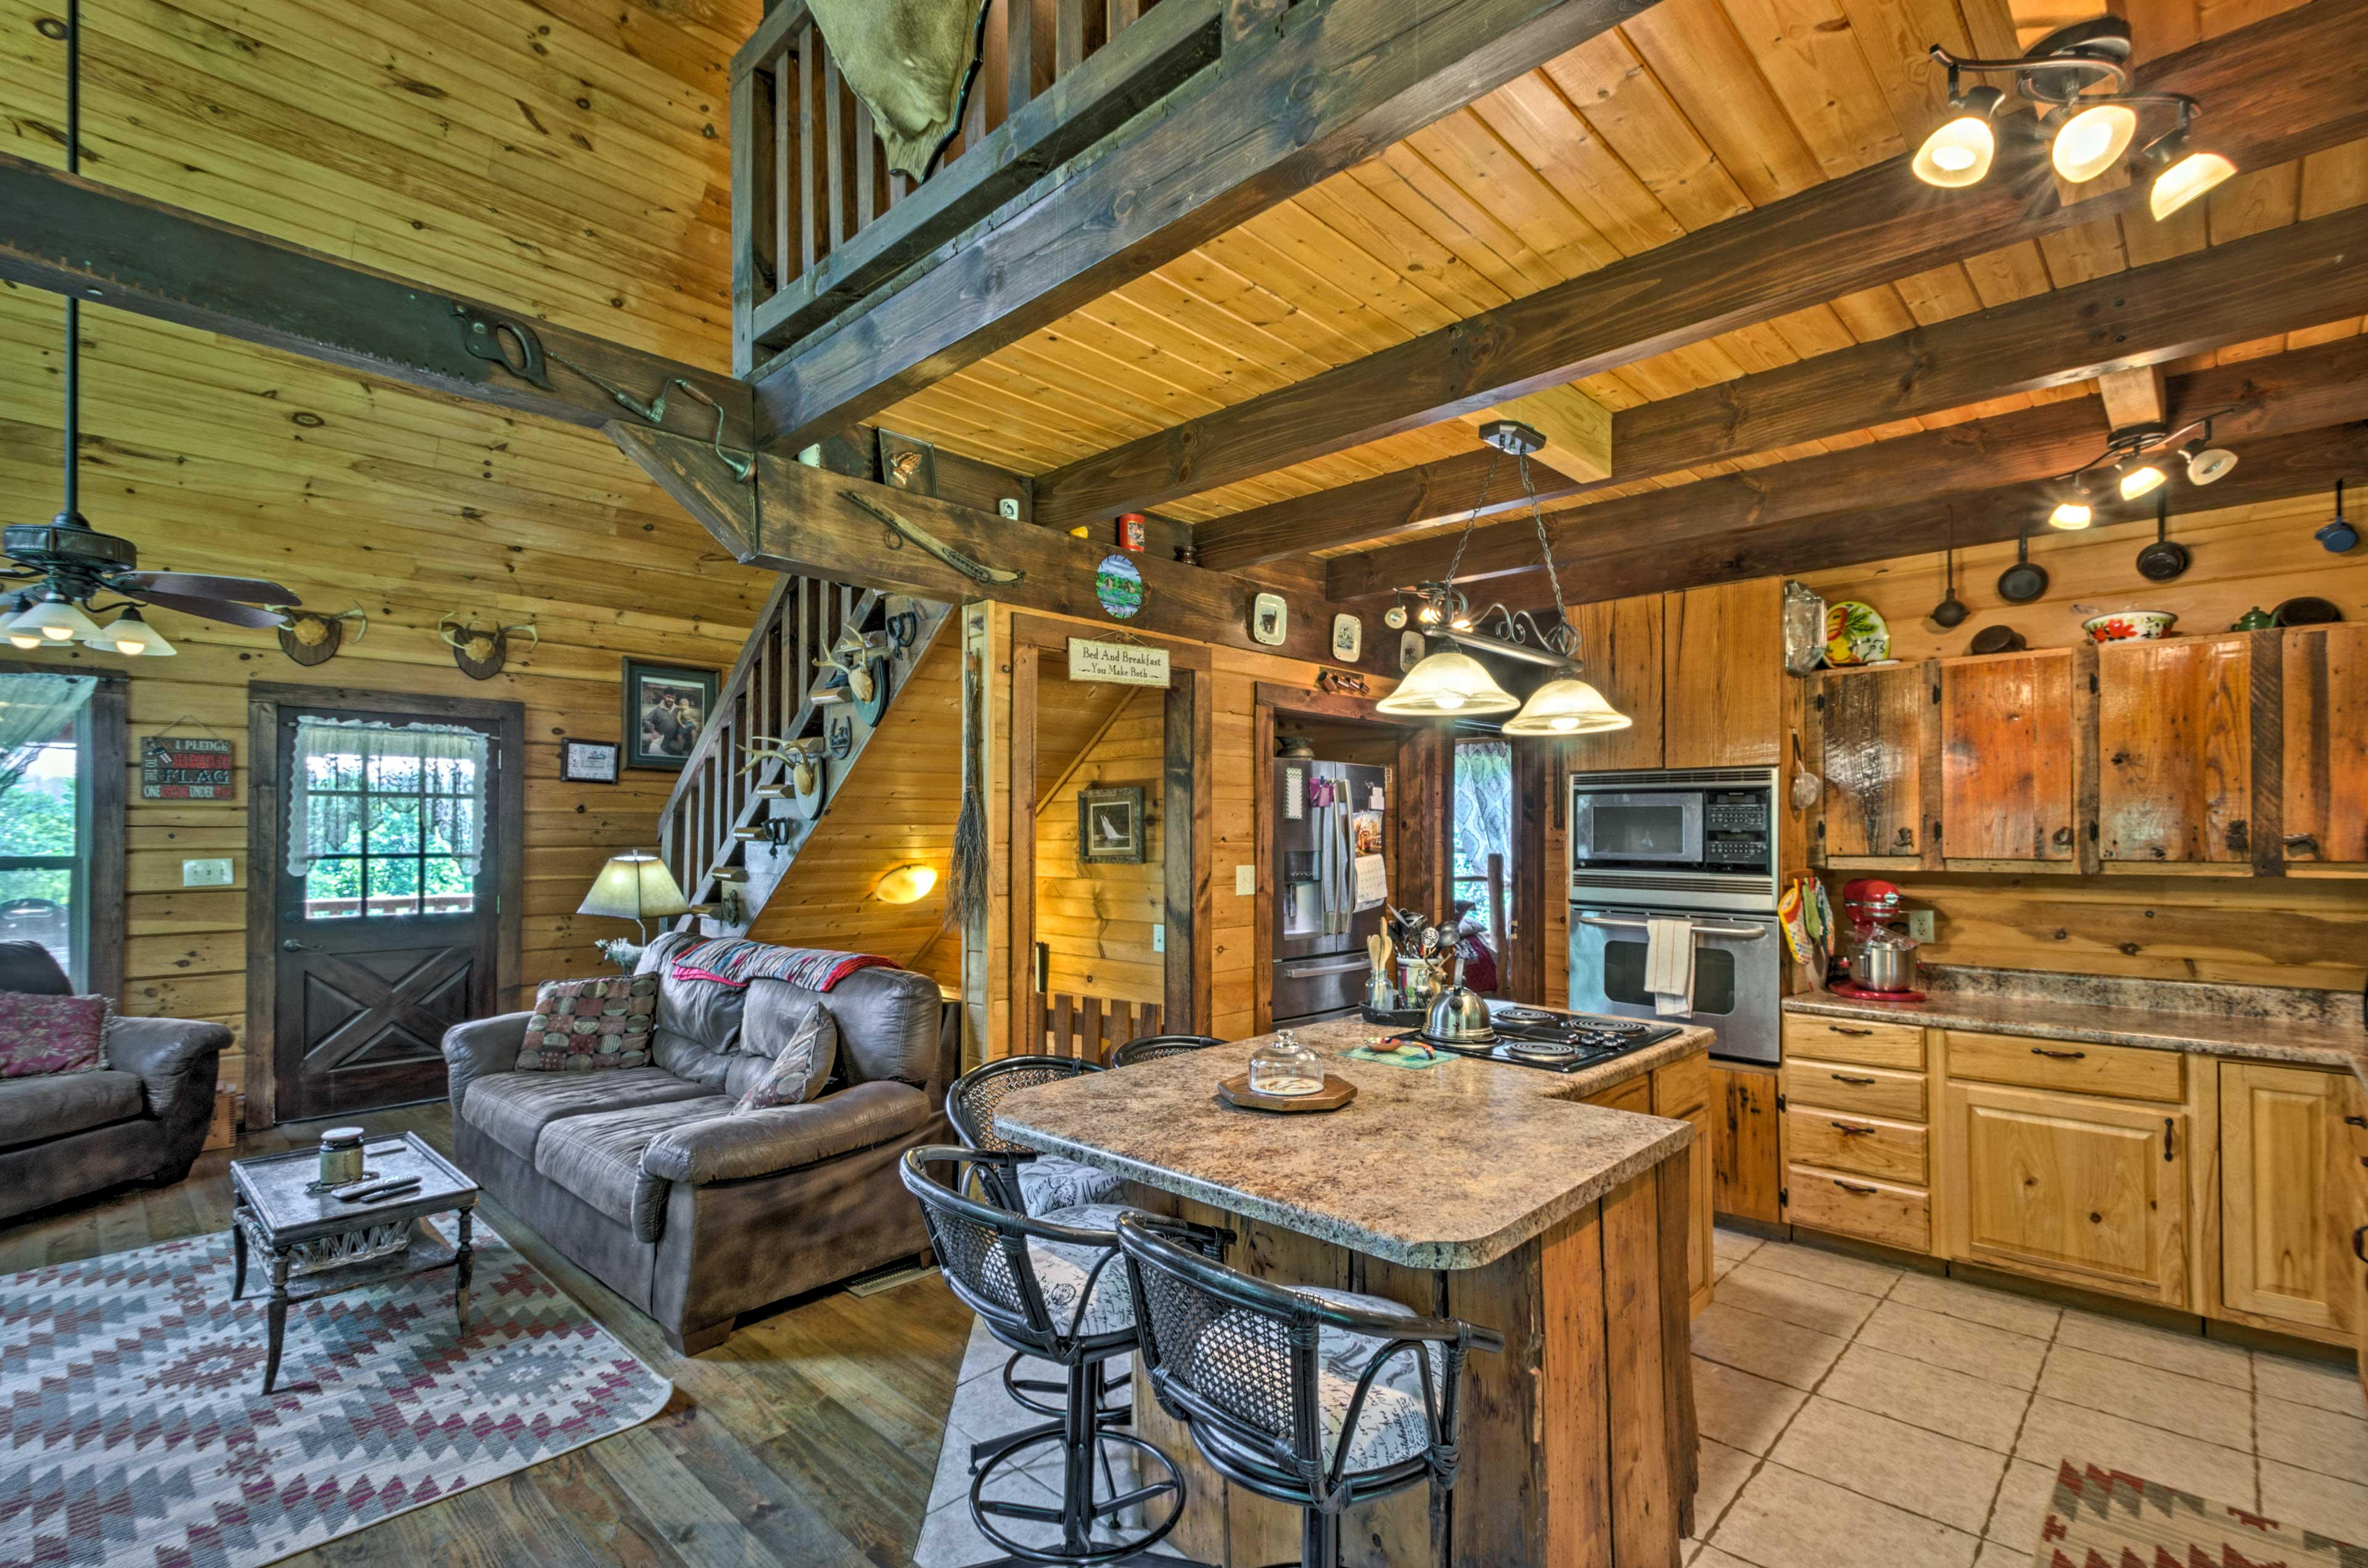 Step inside and make yourself at home in 'Gallaway Cabin.'